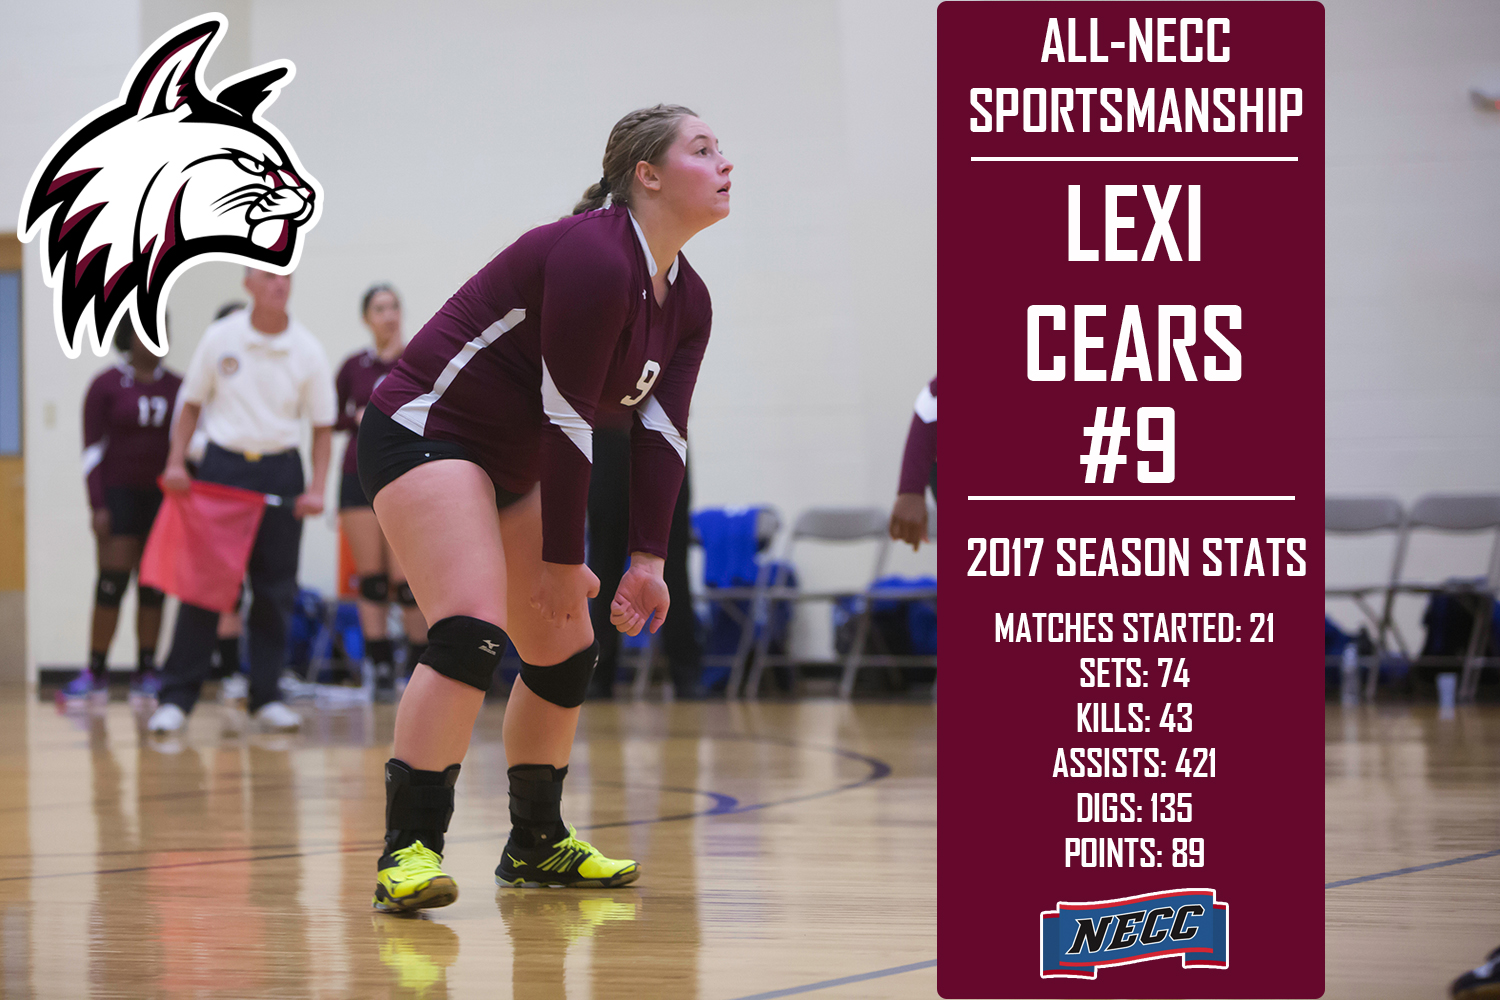 Cears selected to All-NECC Sportsmanship Team